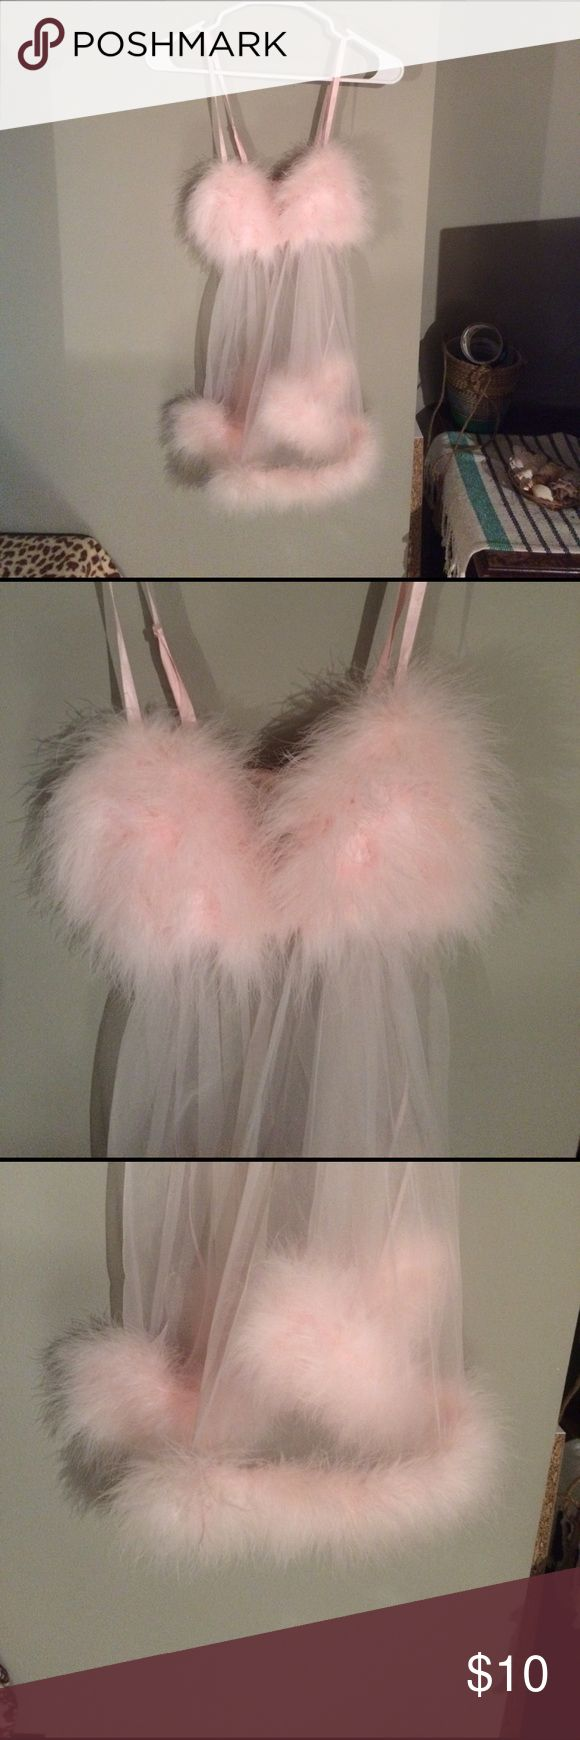 Fun, Fuzzy, Pink Lingerie Fuzzy pink lingerie. Fuzzy around the bottom and then triangle chest area. See through pale pink lace. Frederick's of Hollywood Intimates & Sleepwear